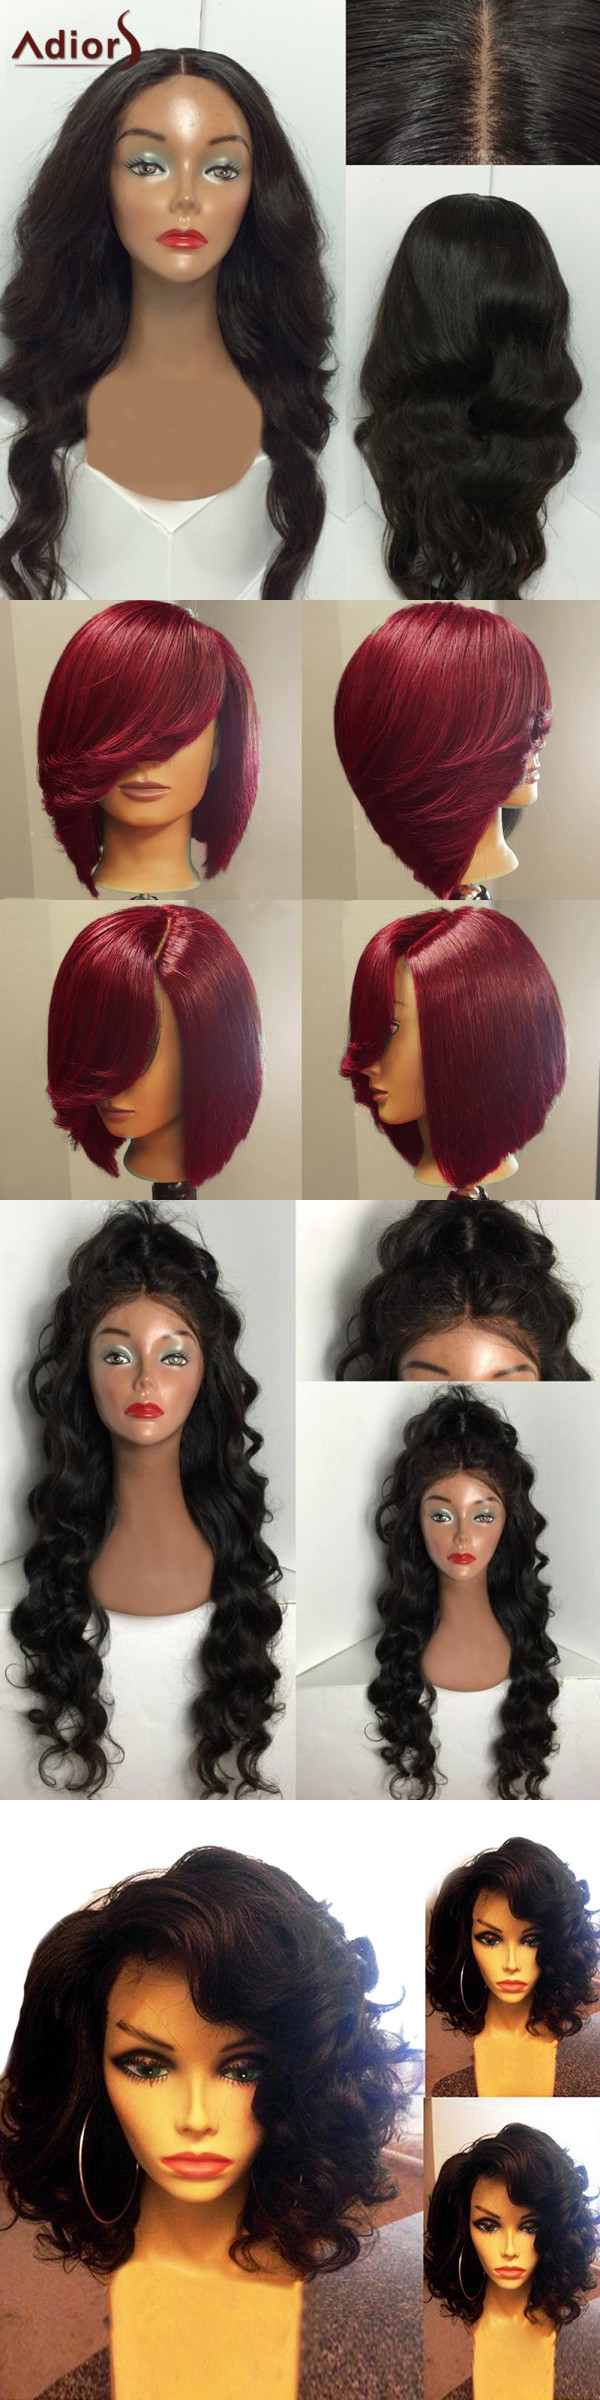 Freeshipping 500 Trendy Wigs For Your Hair Style Start From 2 99 Up To 65 Off Sammydress Com Hair Styles Wine Hair Color Wig Hairstyles